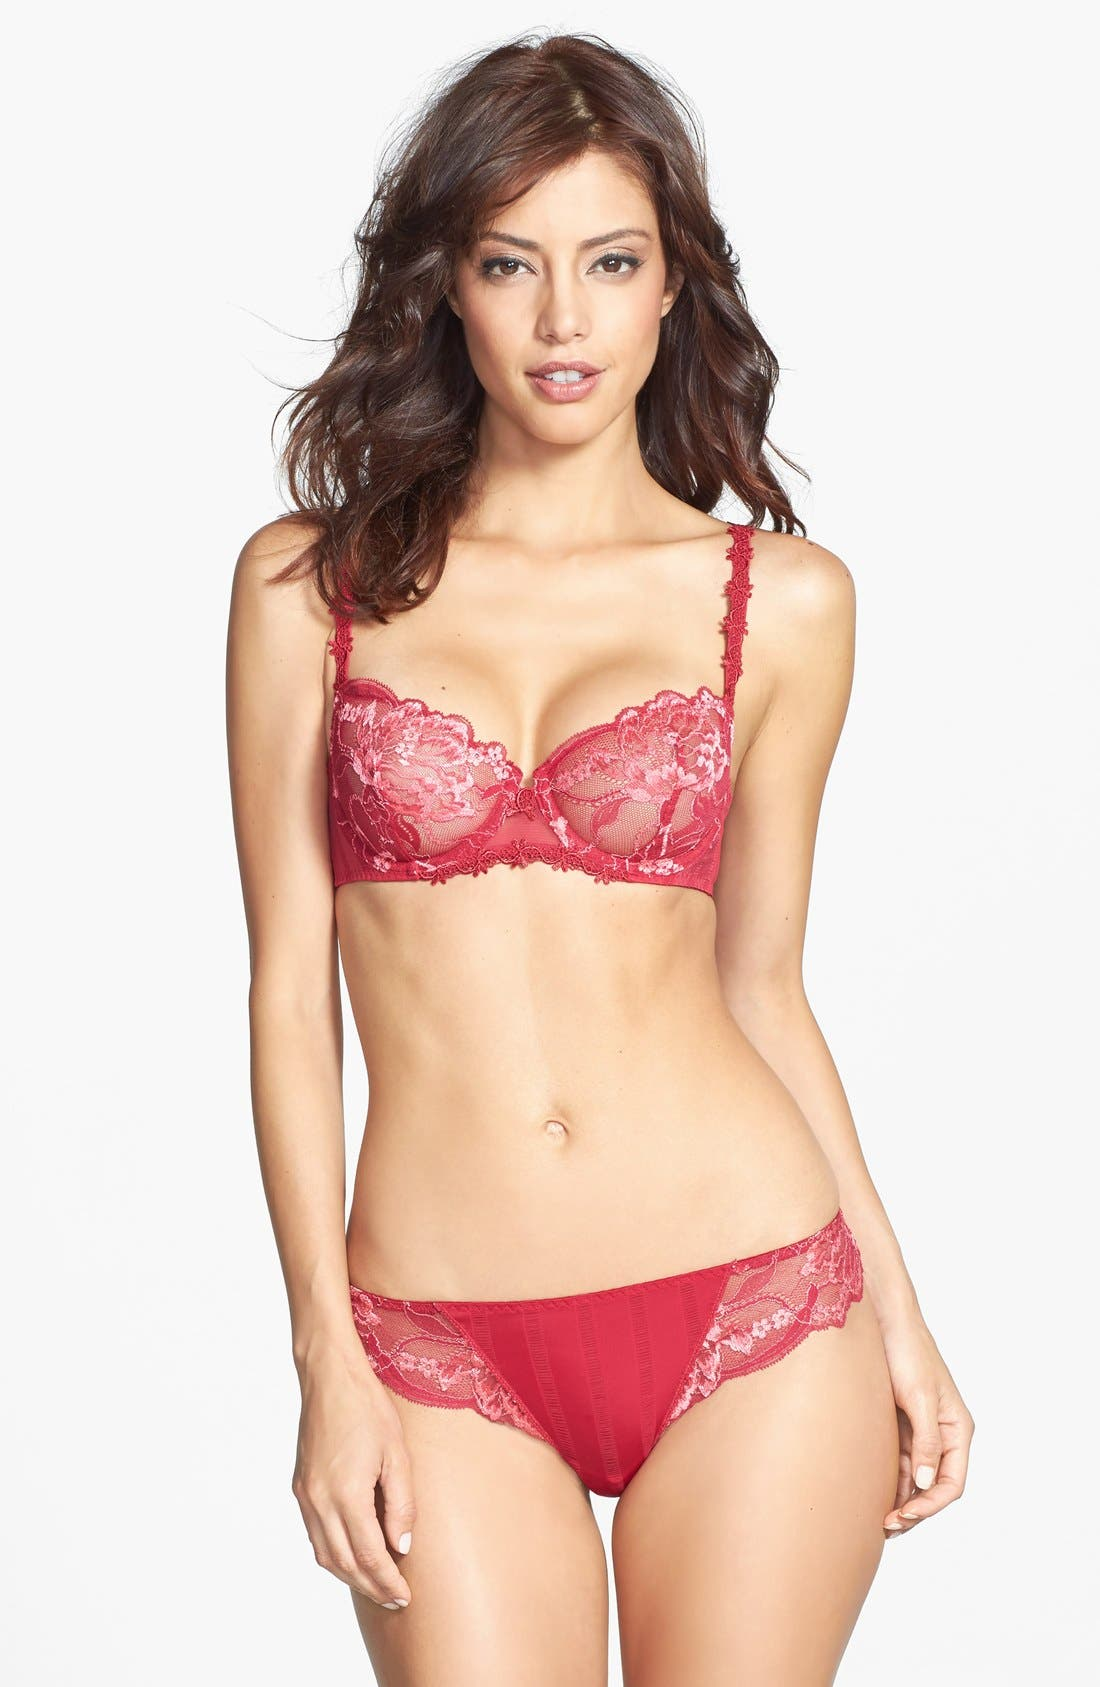 'Amour' Underwire Demi Bra,                             Alternate thumbnail 52, color,